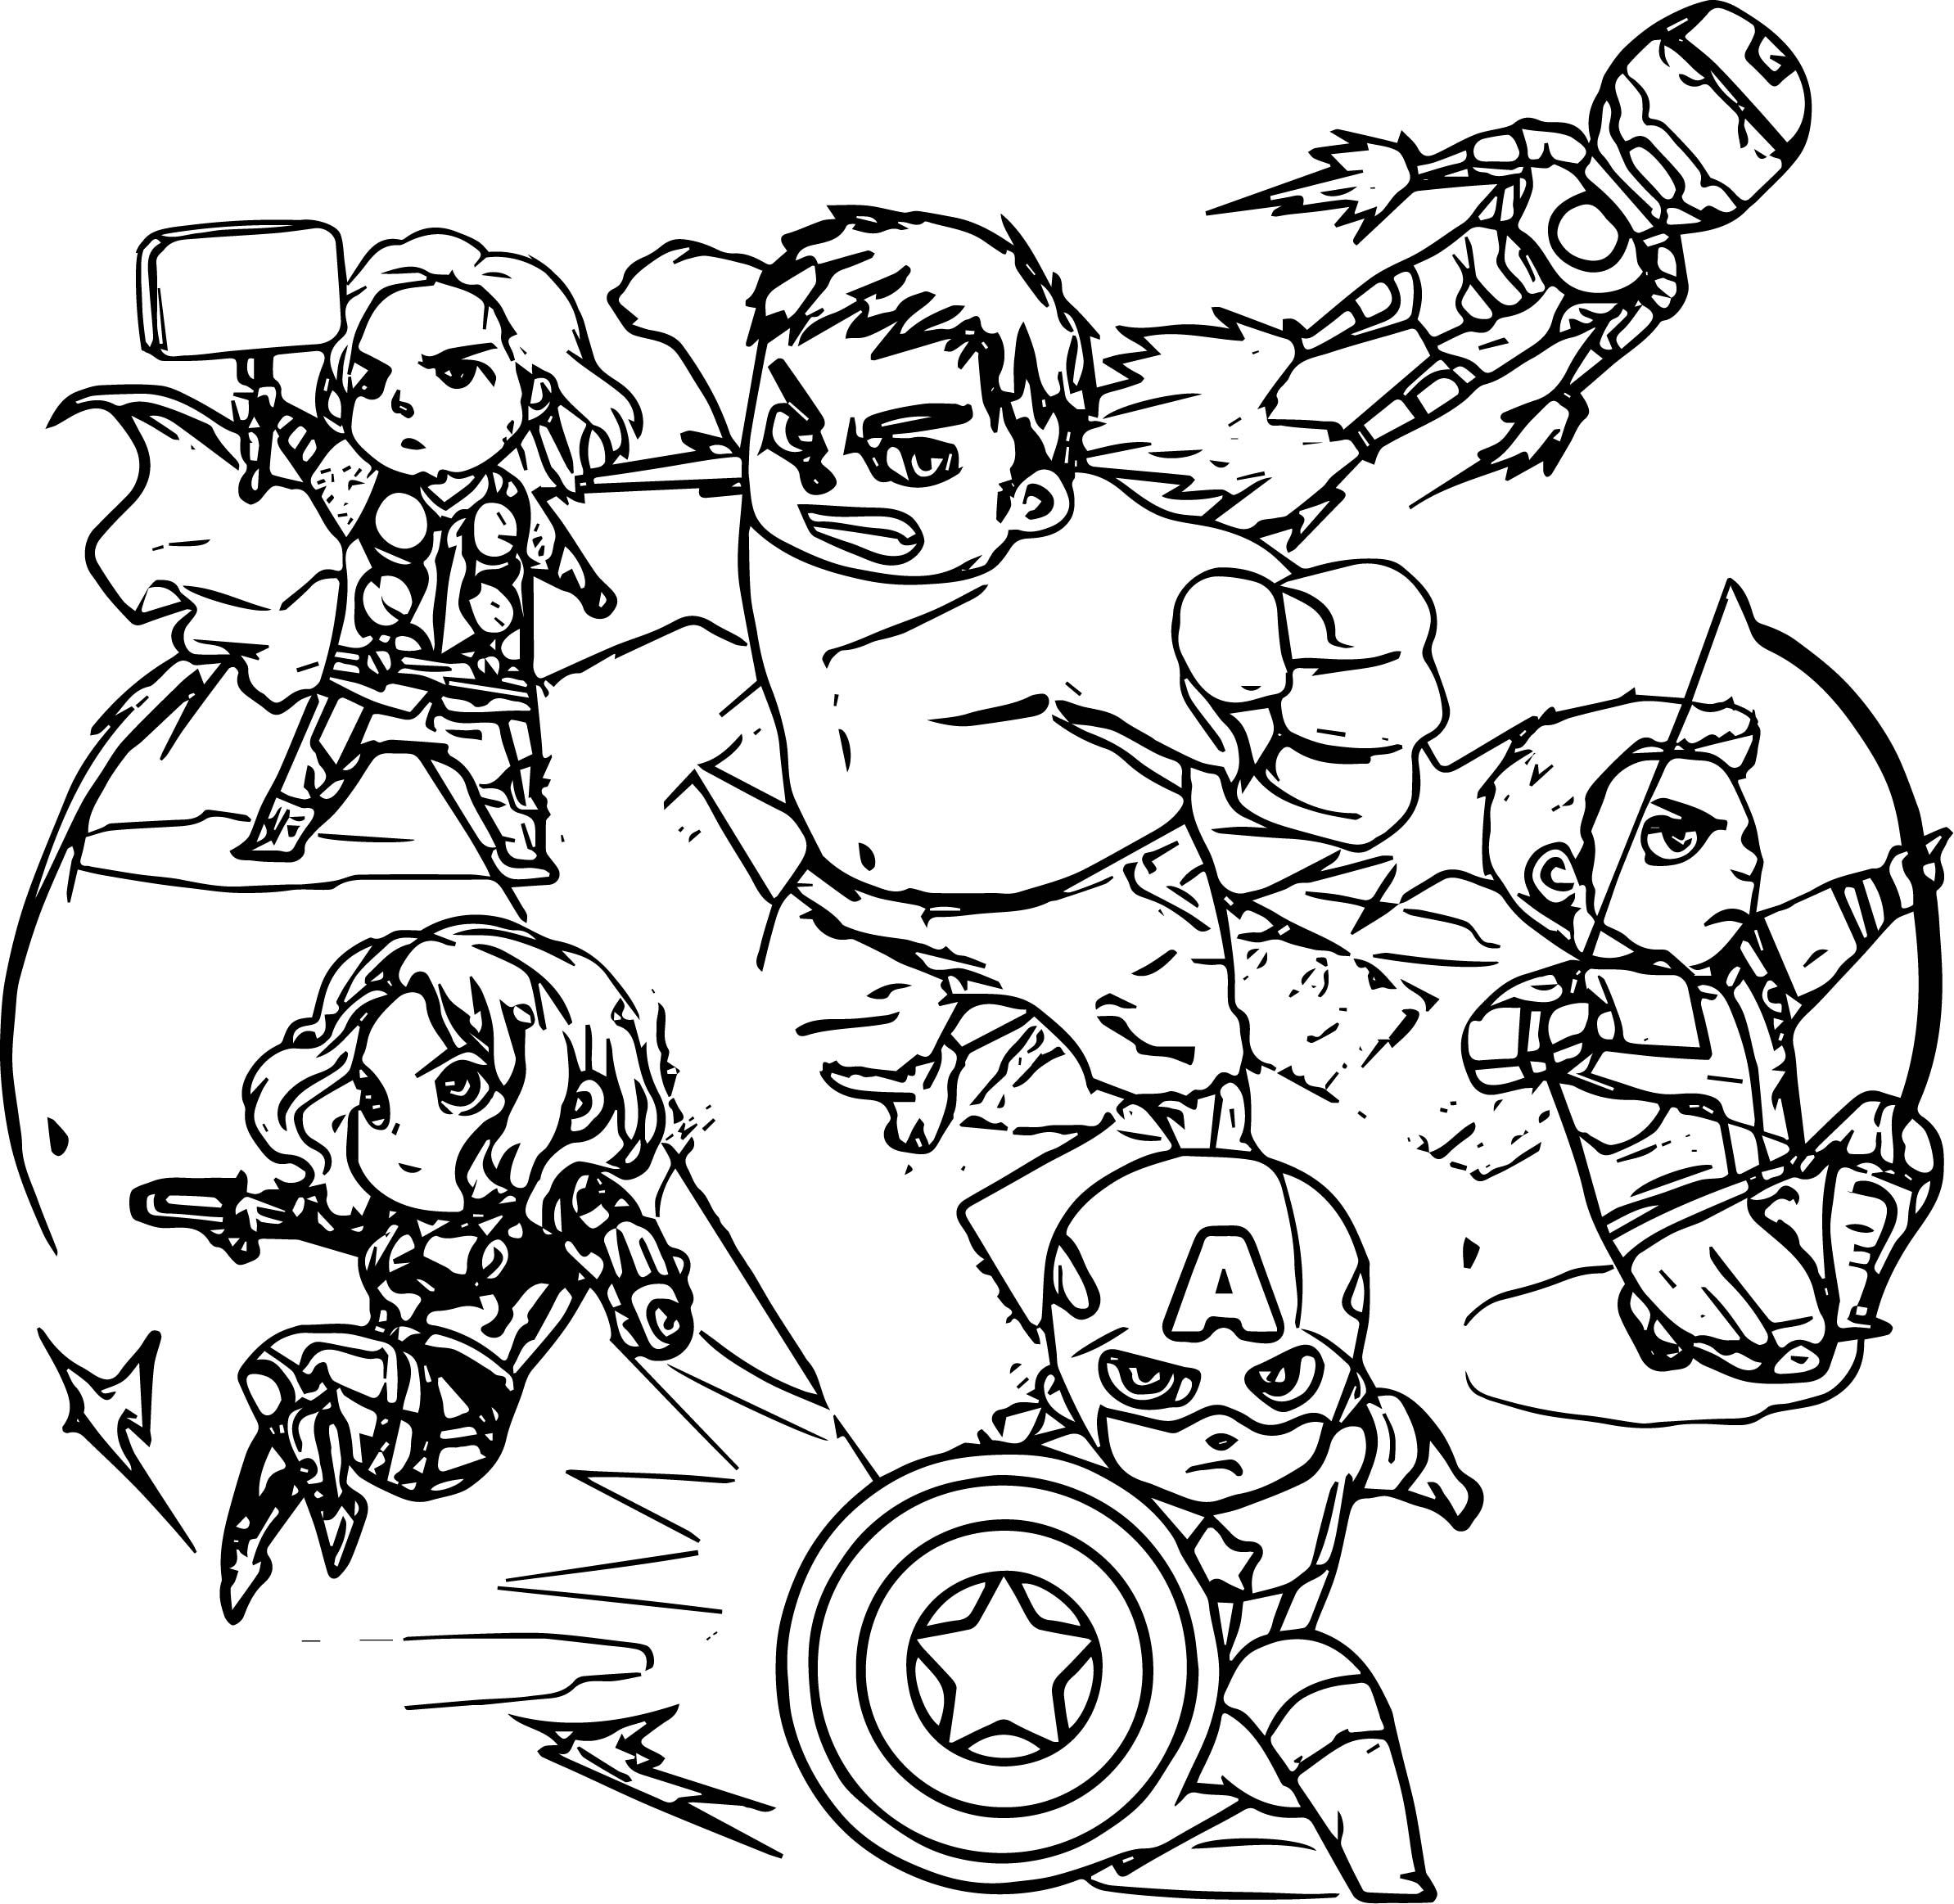 Download nice Avengers Fight Time Coloring Page | Coloring pages, Printable coloring pages